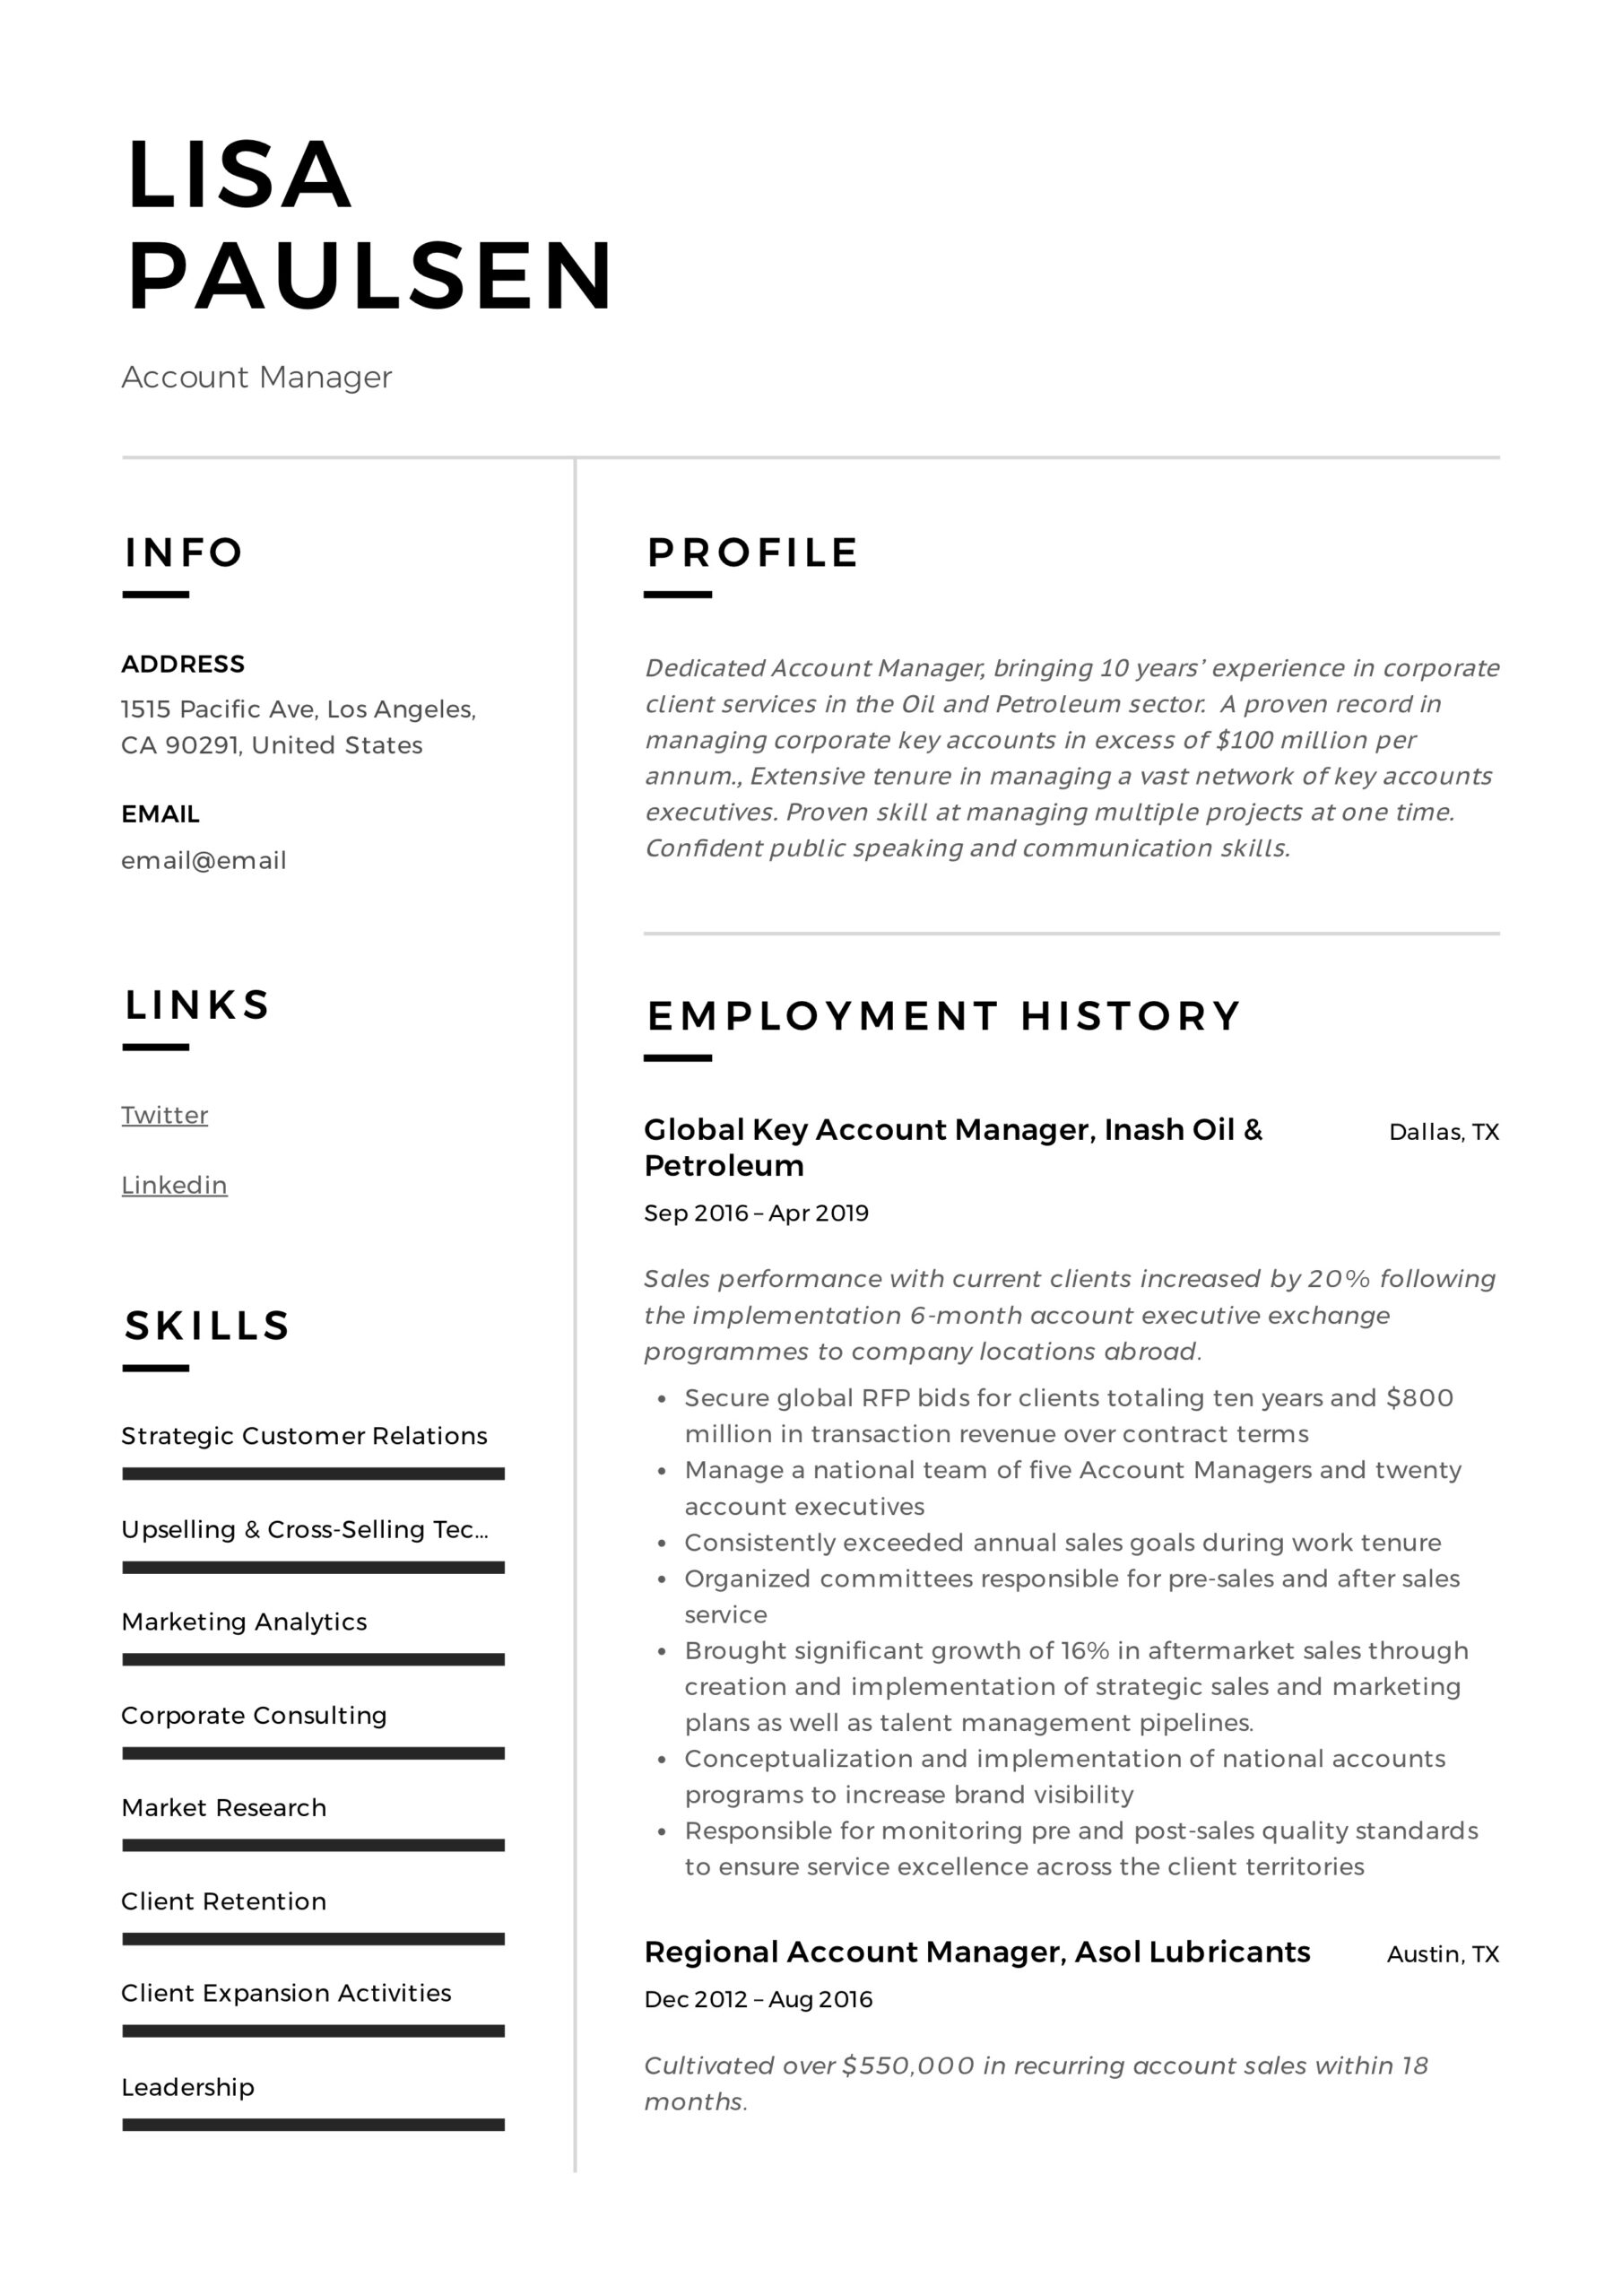 account manager resume writing guide examples lisa paulsen child care worker objective Resume Sales Account Manager Resume